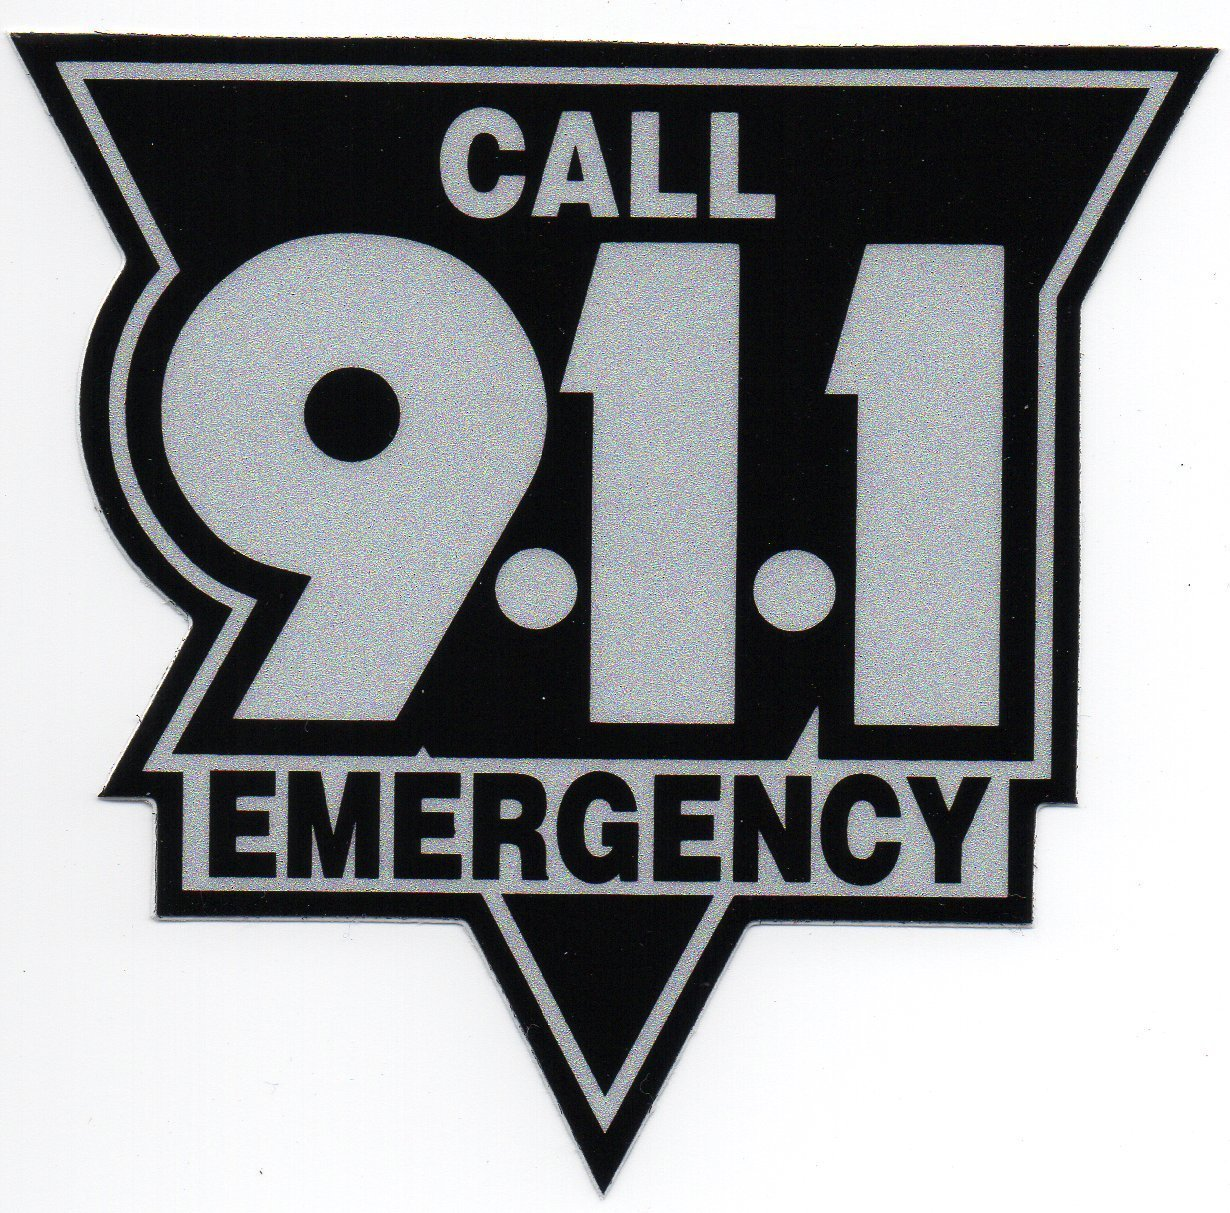 """EMERGENCY - CALL 911 Highly Reflective Vinyl DECAL  10"""" - BLACK AND SILVER"""